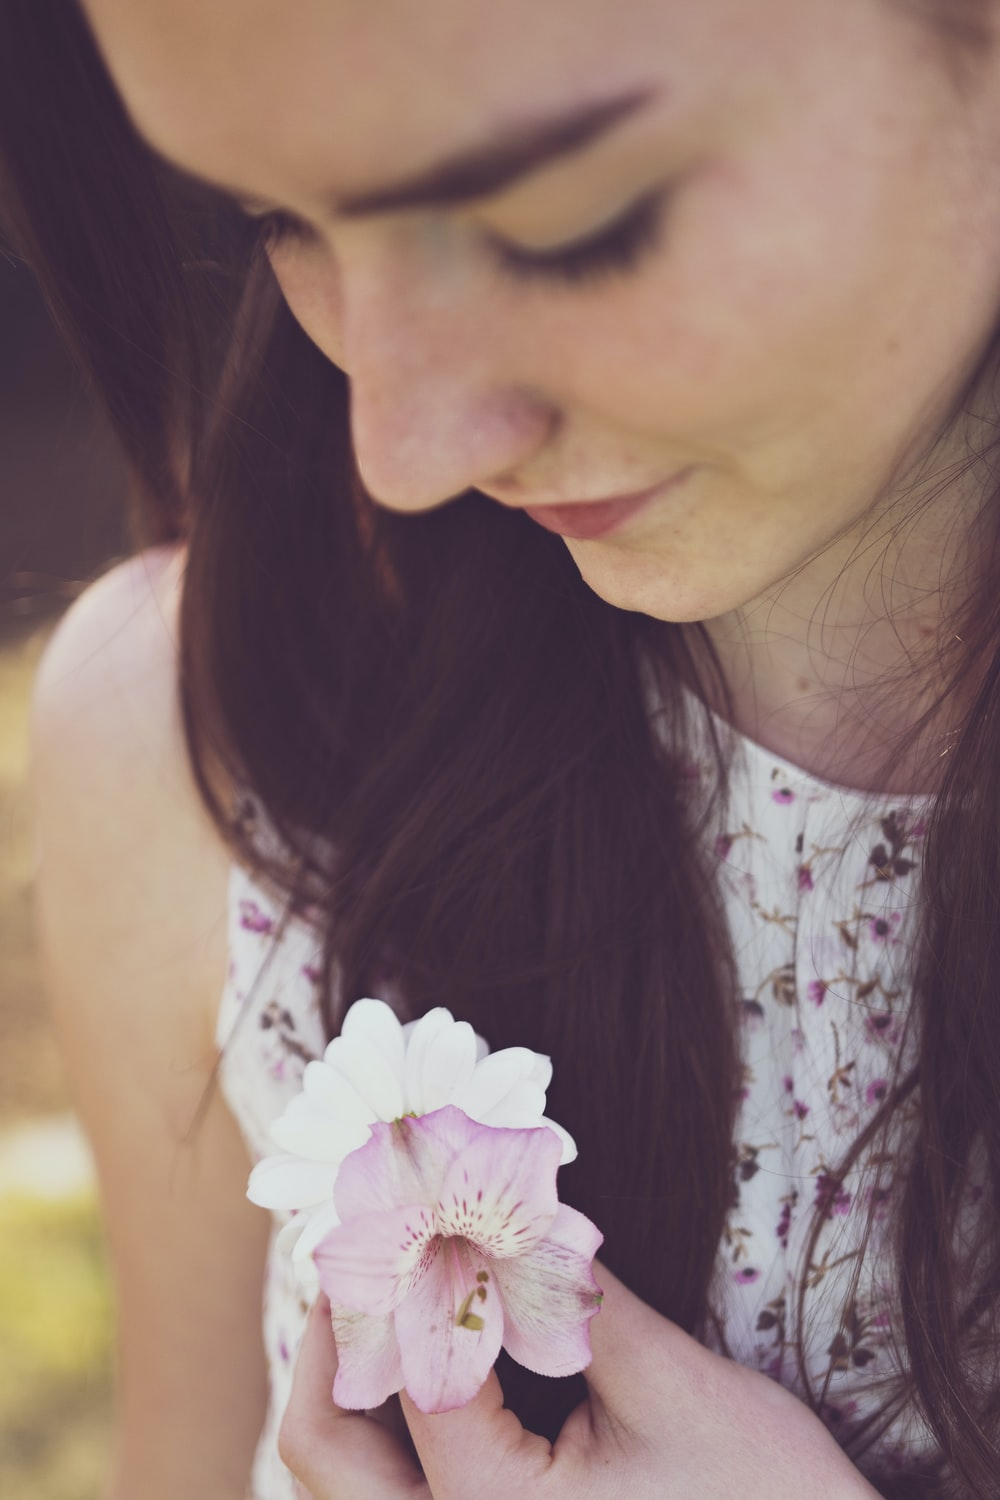 woman holding white and purple orchids